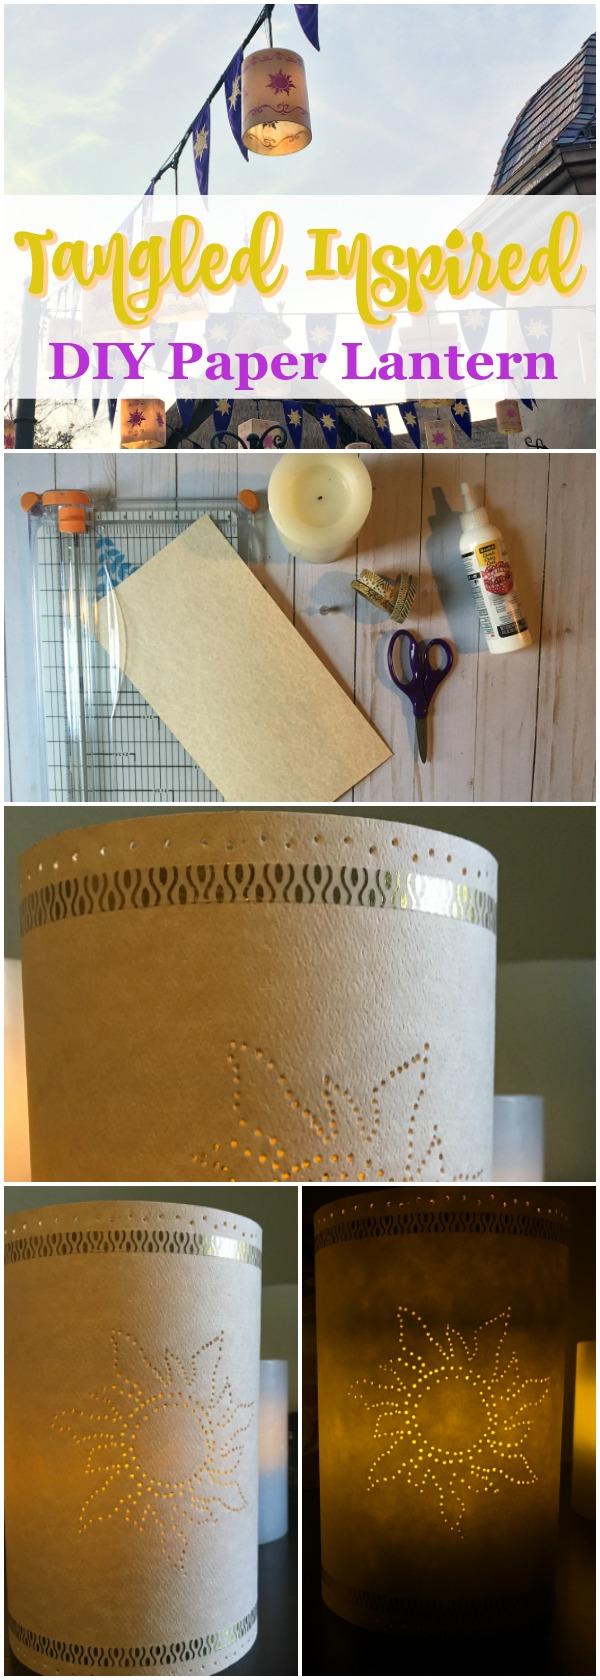 Tangled Inspired DIY Paper Lantern EASY craft via Atypical Familia by Lisa Quinones Fontanez